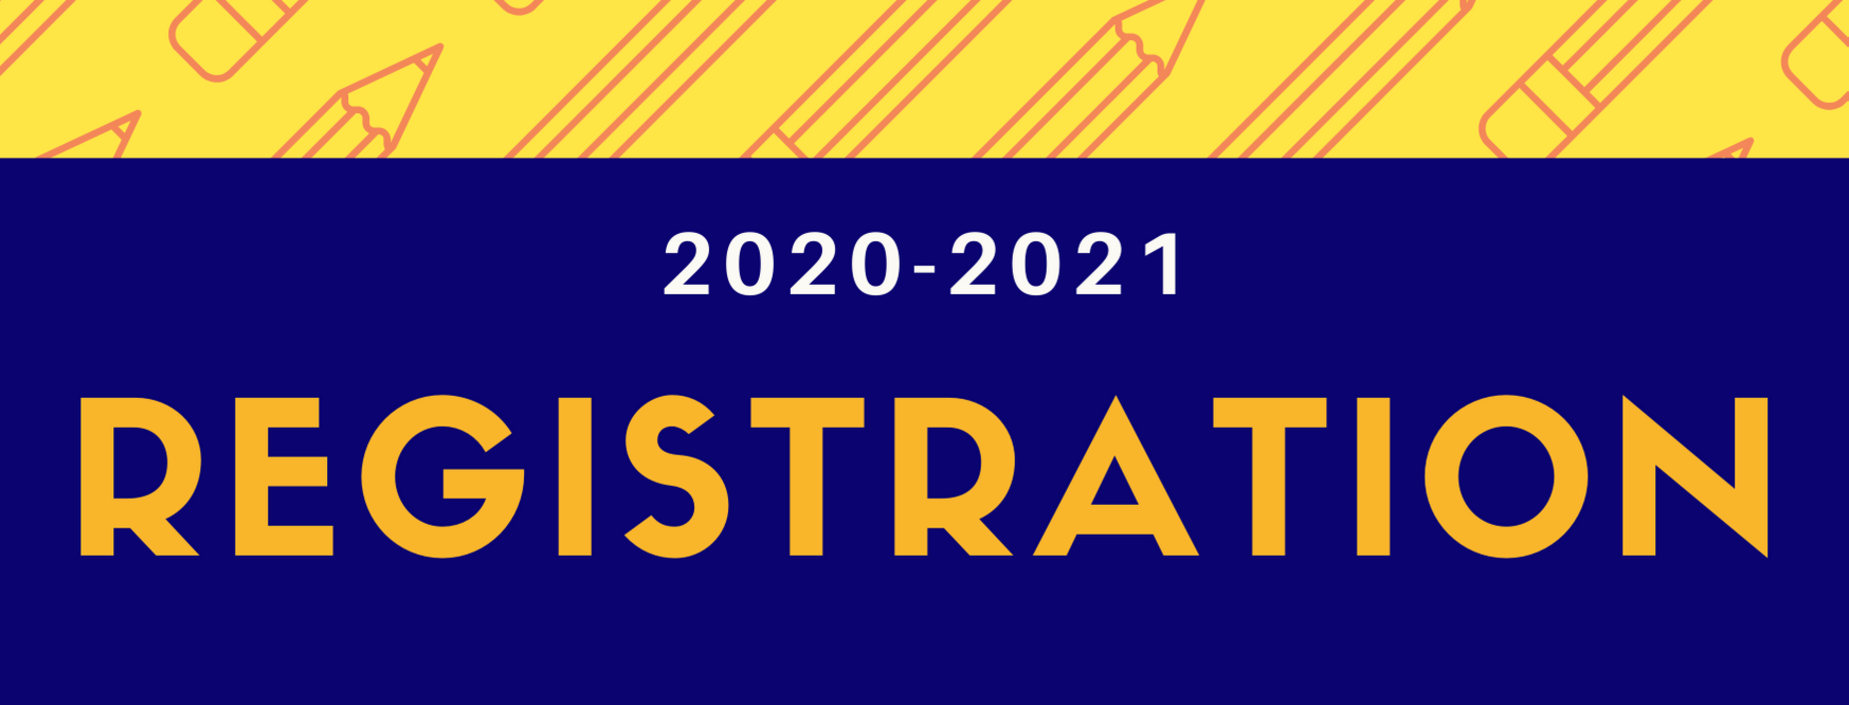 Blue and Yellow banner with yellow pencils for 2020-2021 Registration